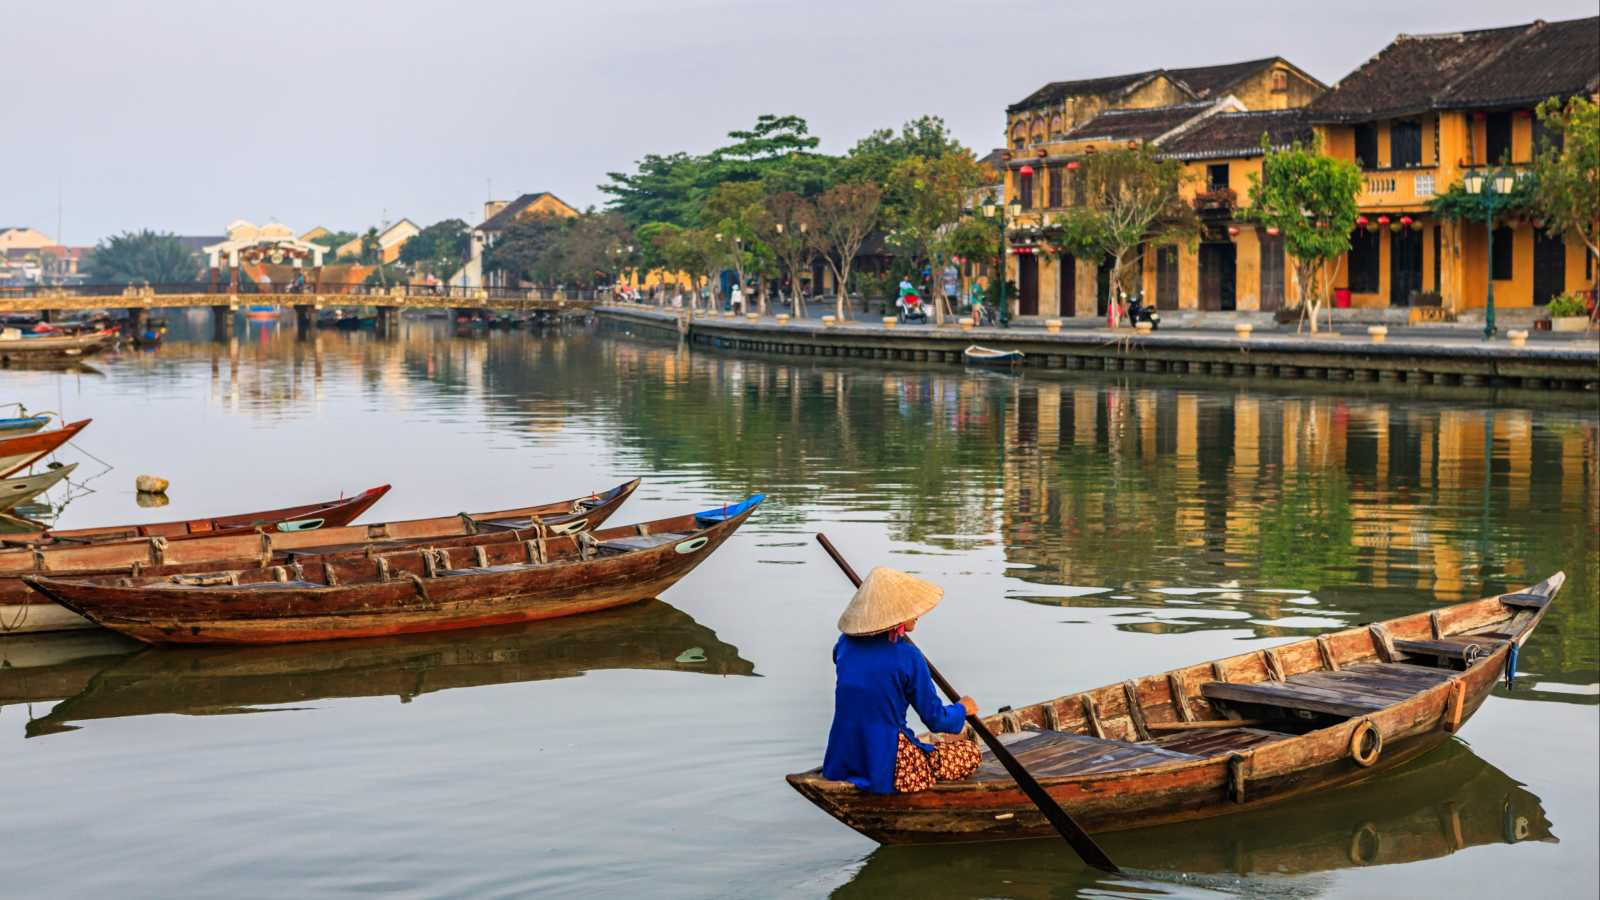 A_woman_on_a_traditional_boat_on_a_river_in_Hoi-An_Vietnam